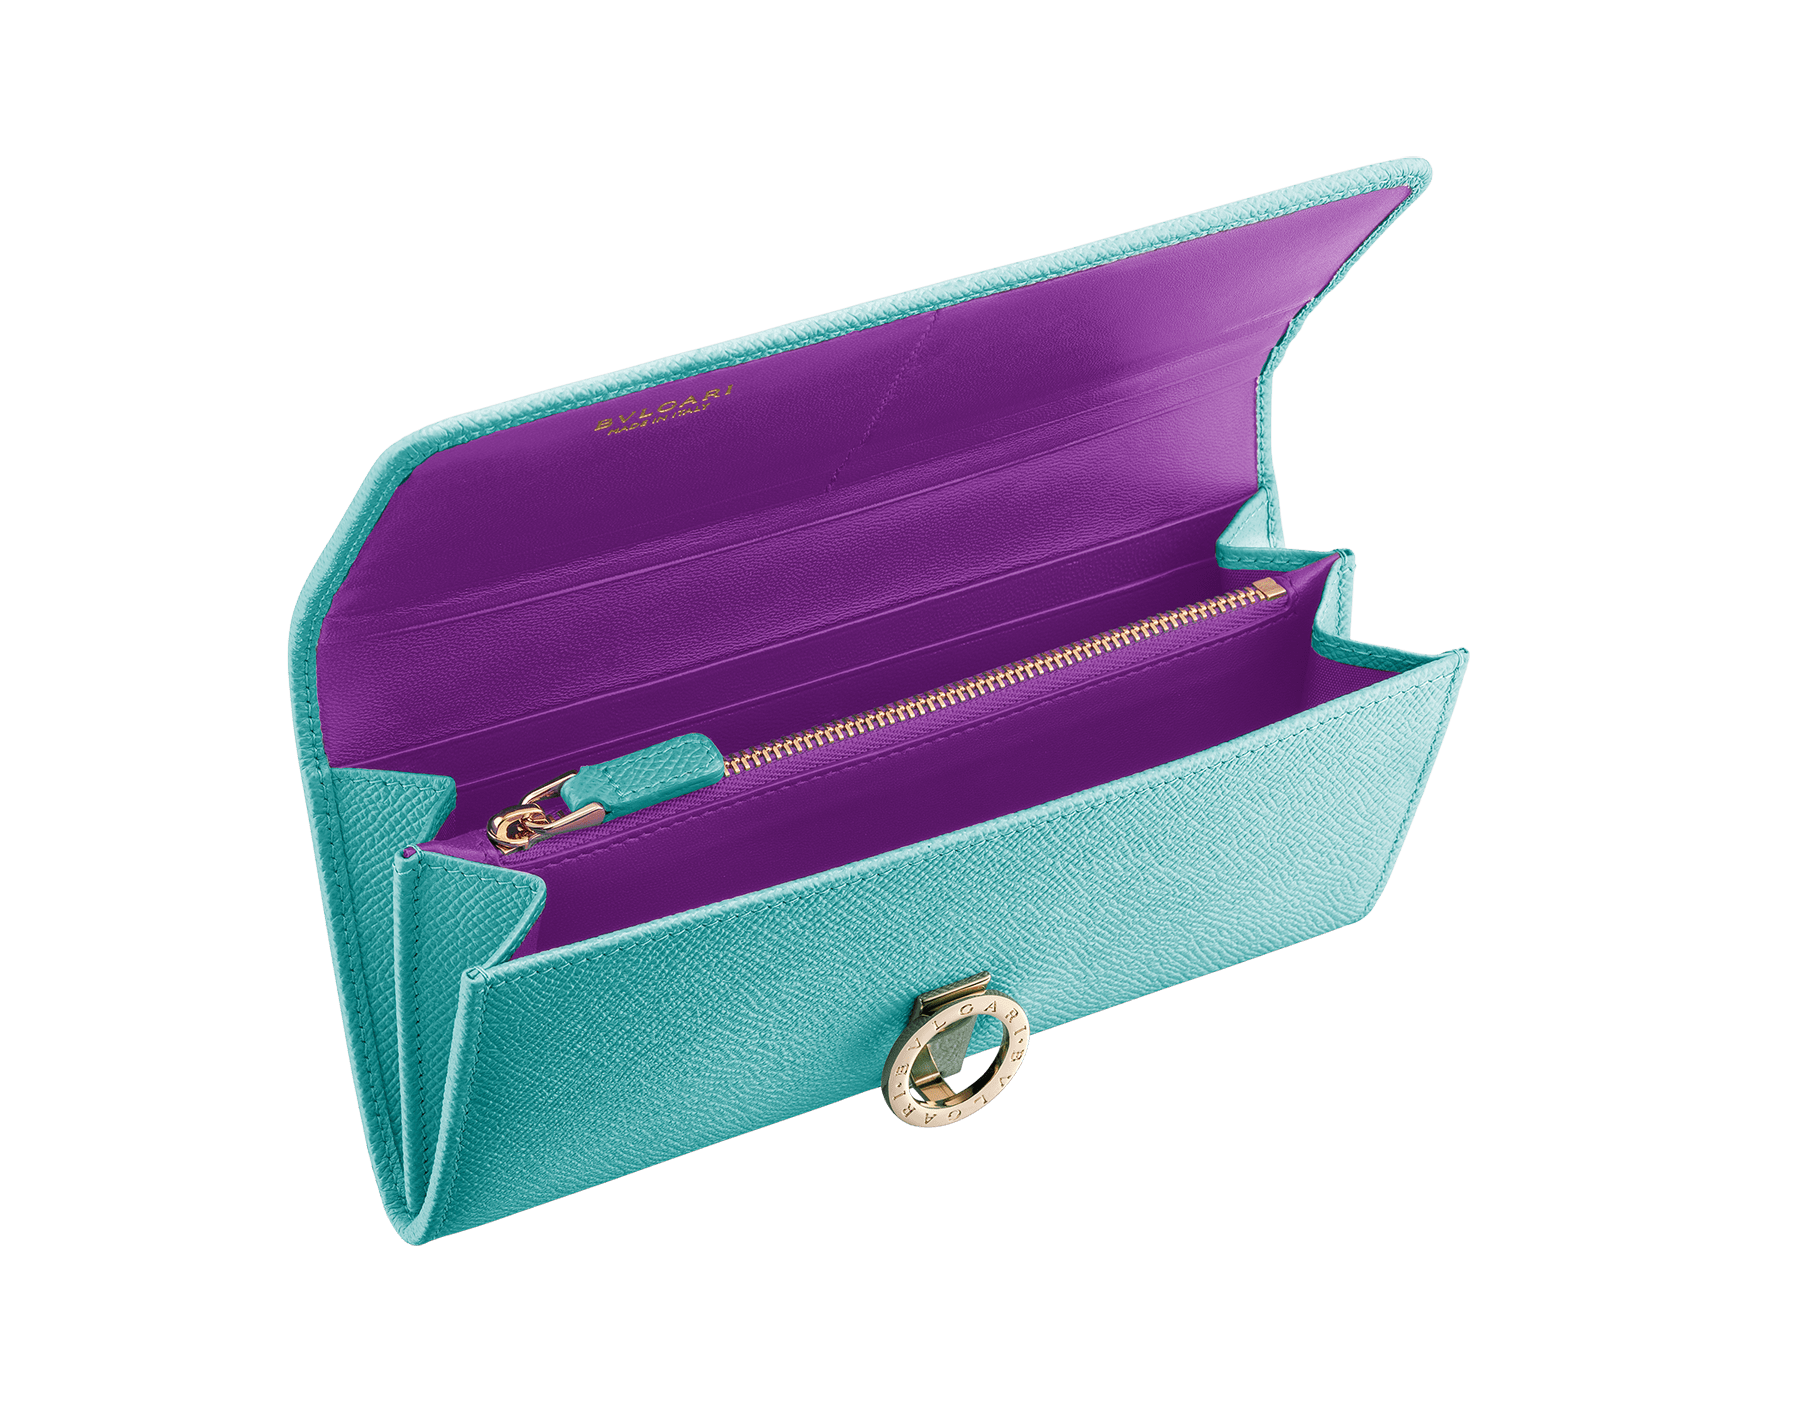 BVLGARI BVLGARI wallet pochette in arctic jade grain calf leather and grape amethyst nappa leather. Iconic logo closure clip in light gold plated brass. 289052 image 2